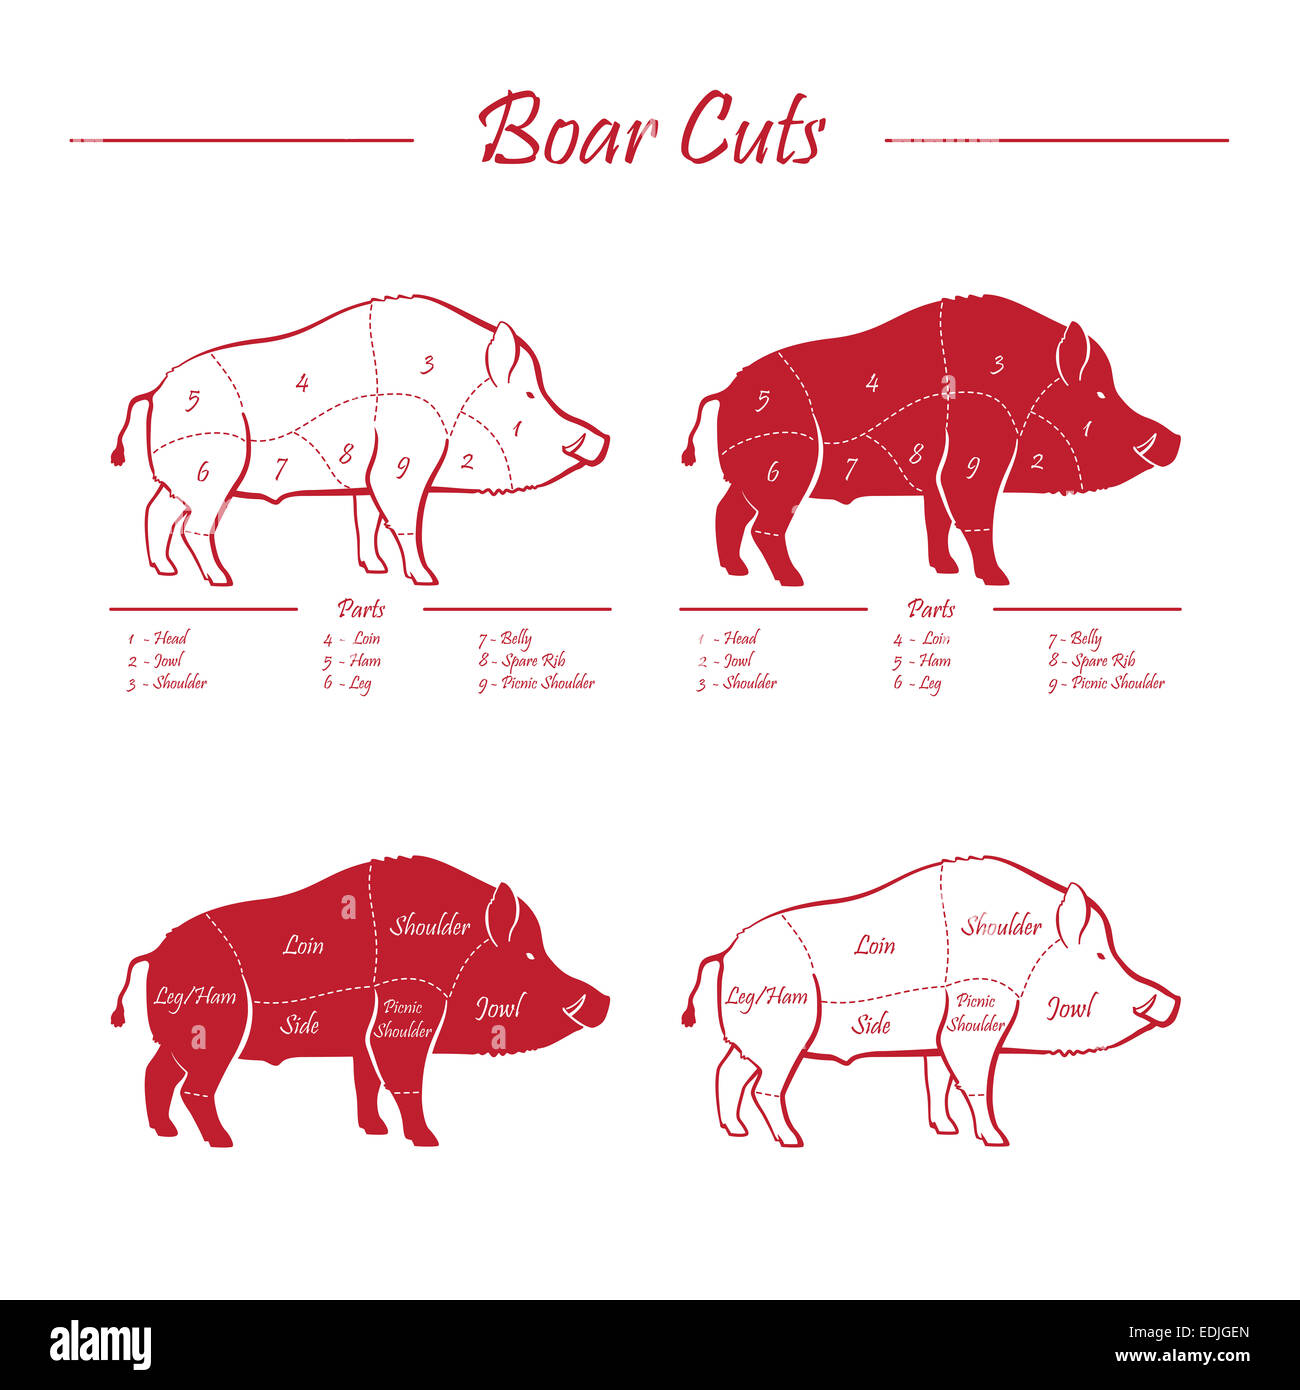 Wild hog, boar game meat cut diagram scheme - elements set red on white background - Stock Image